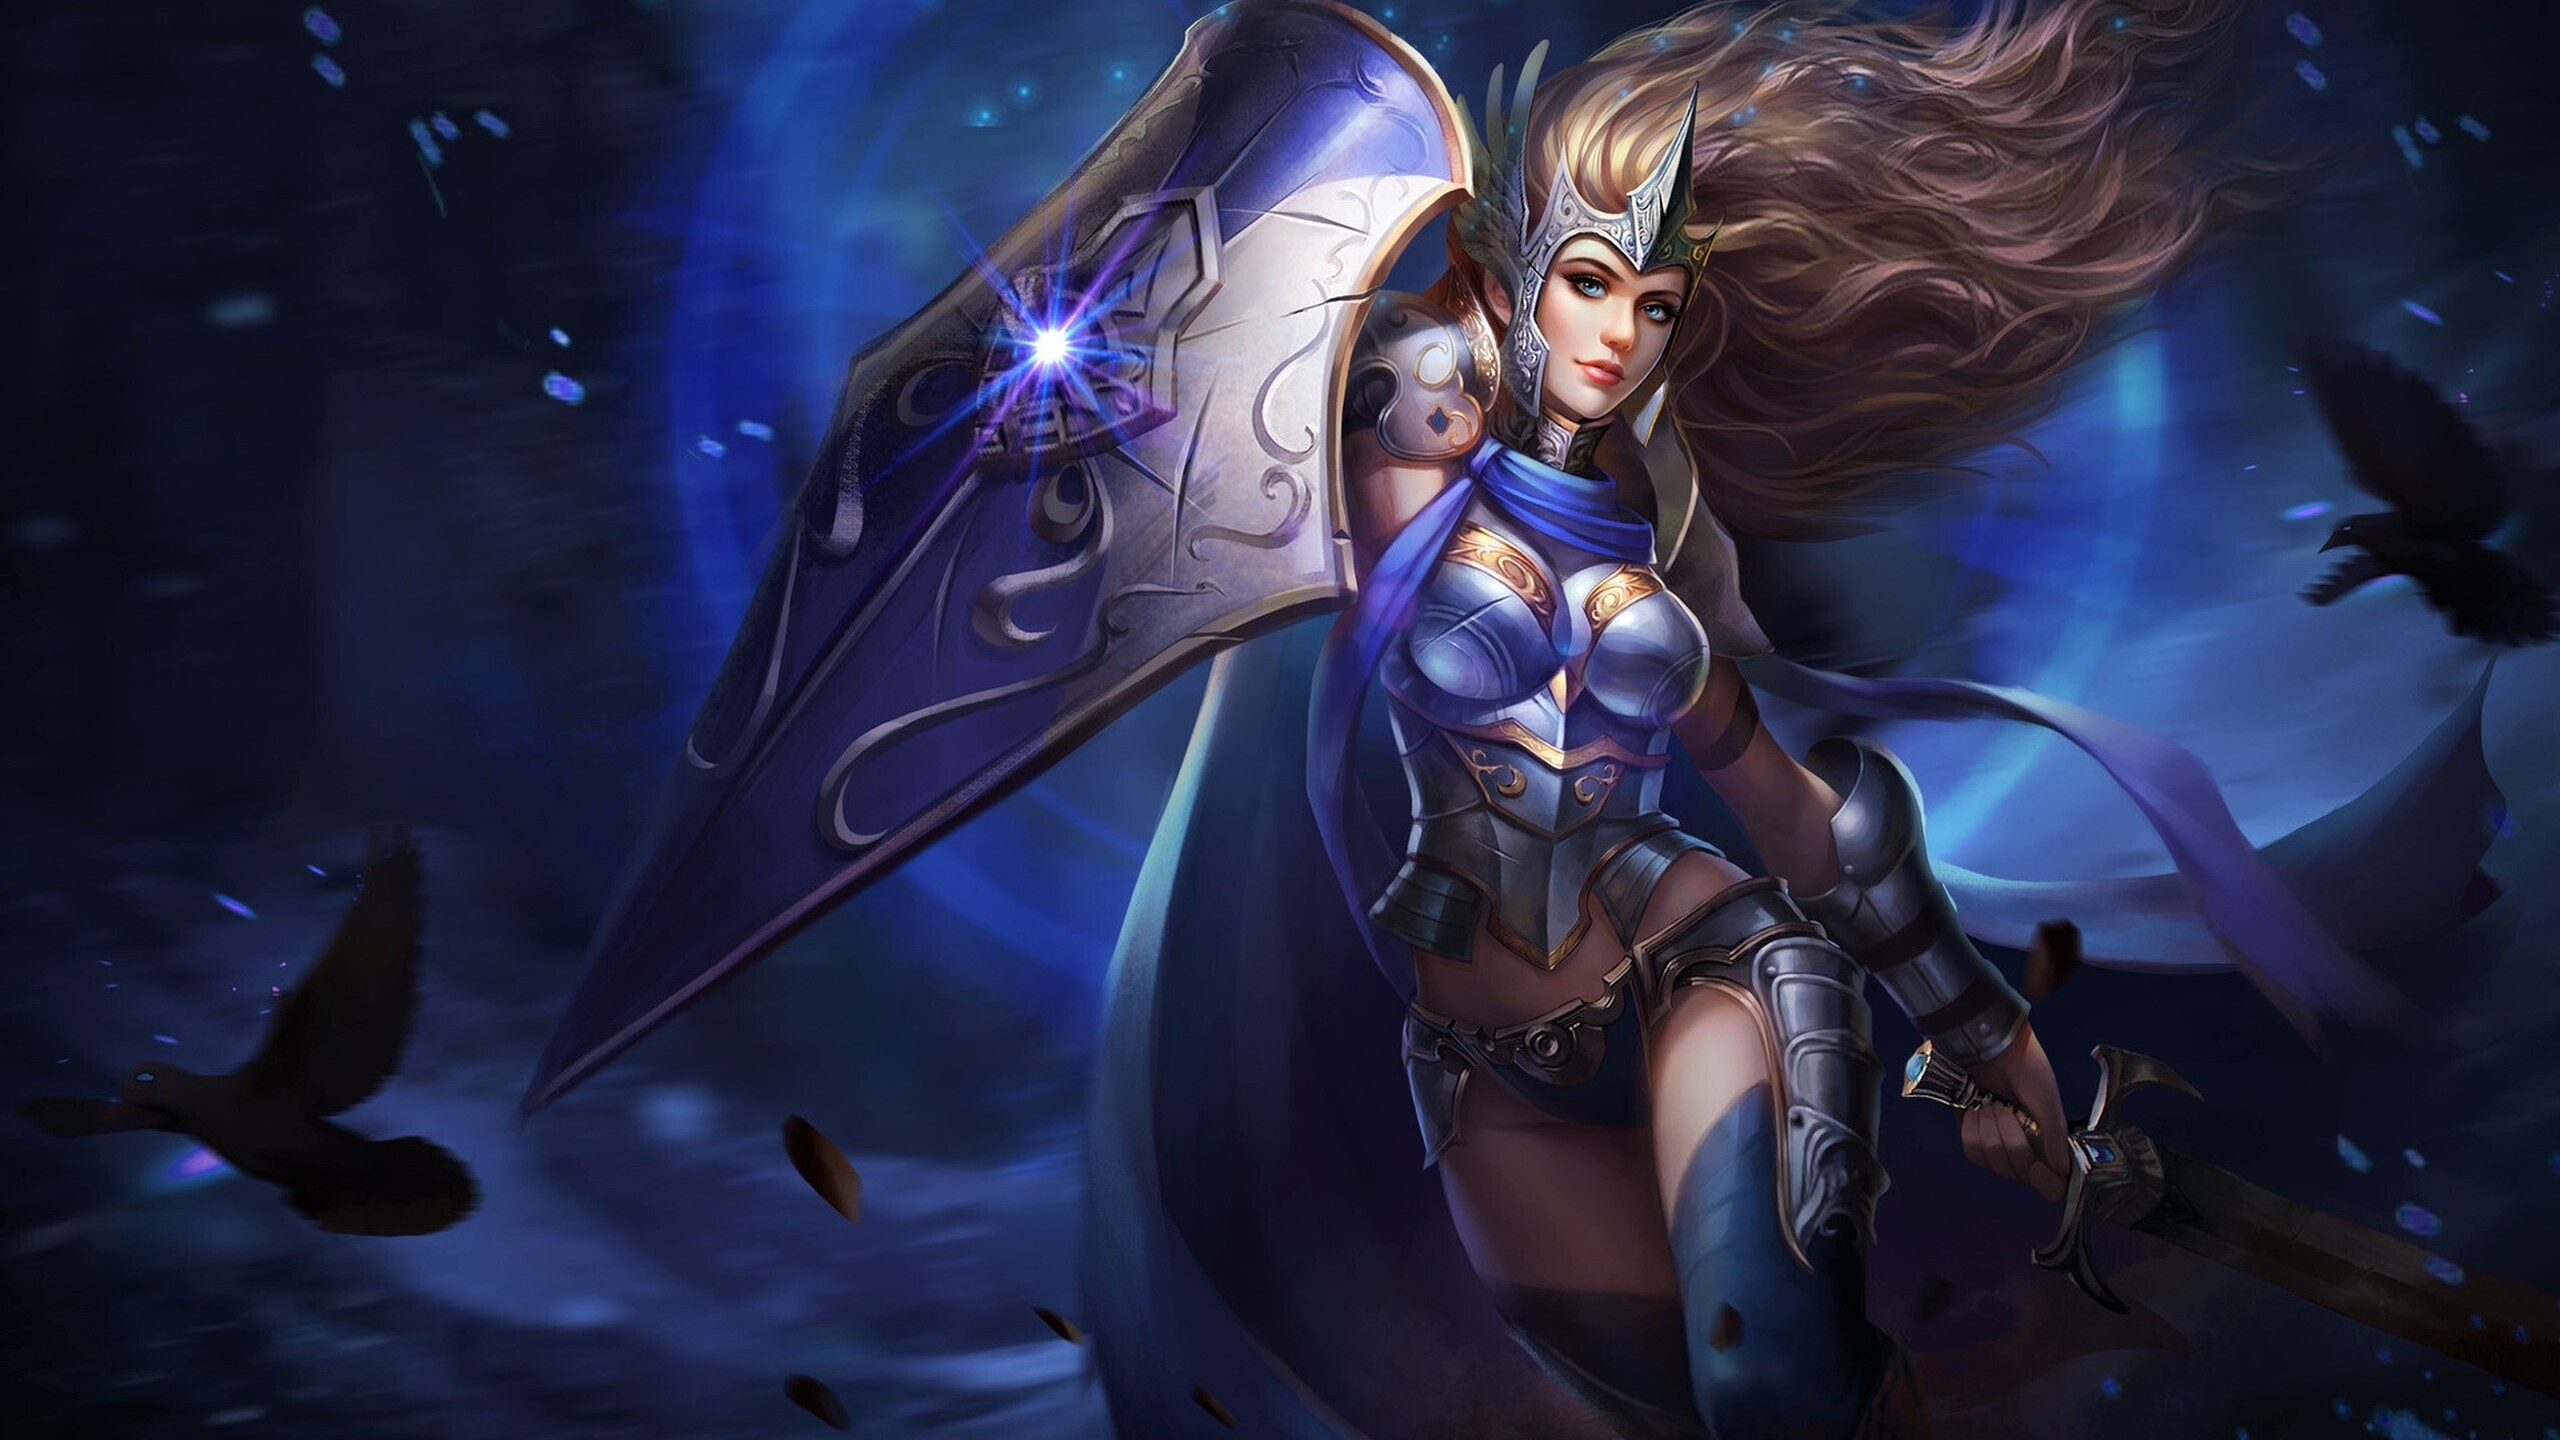 2560x1440 fantasy warrior girl with shield and sword 1440p